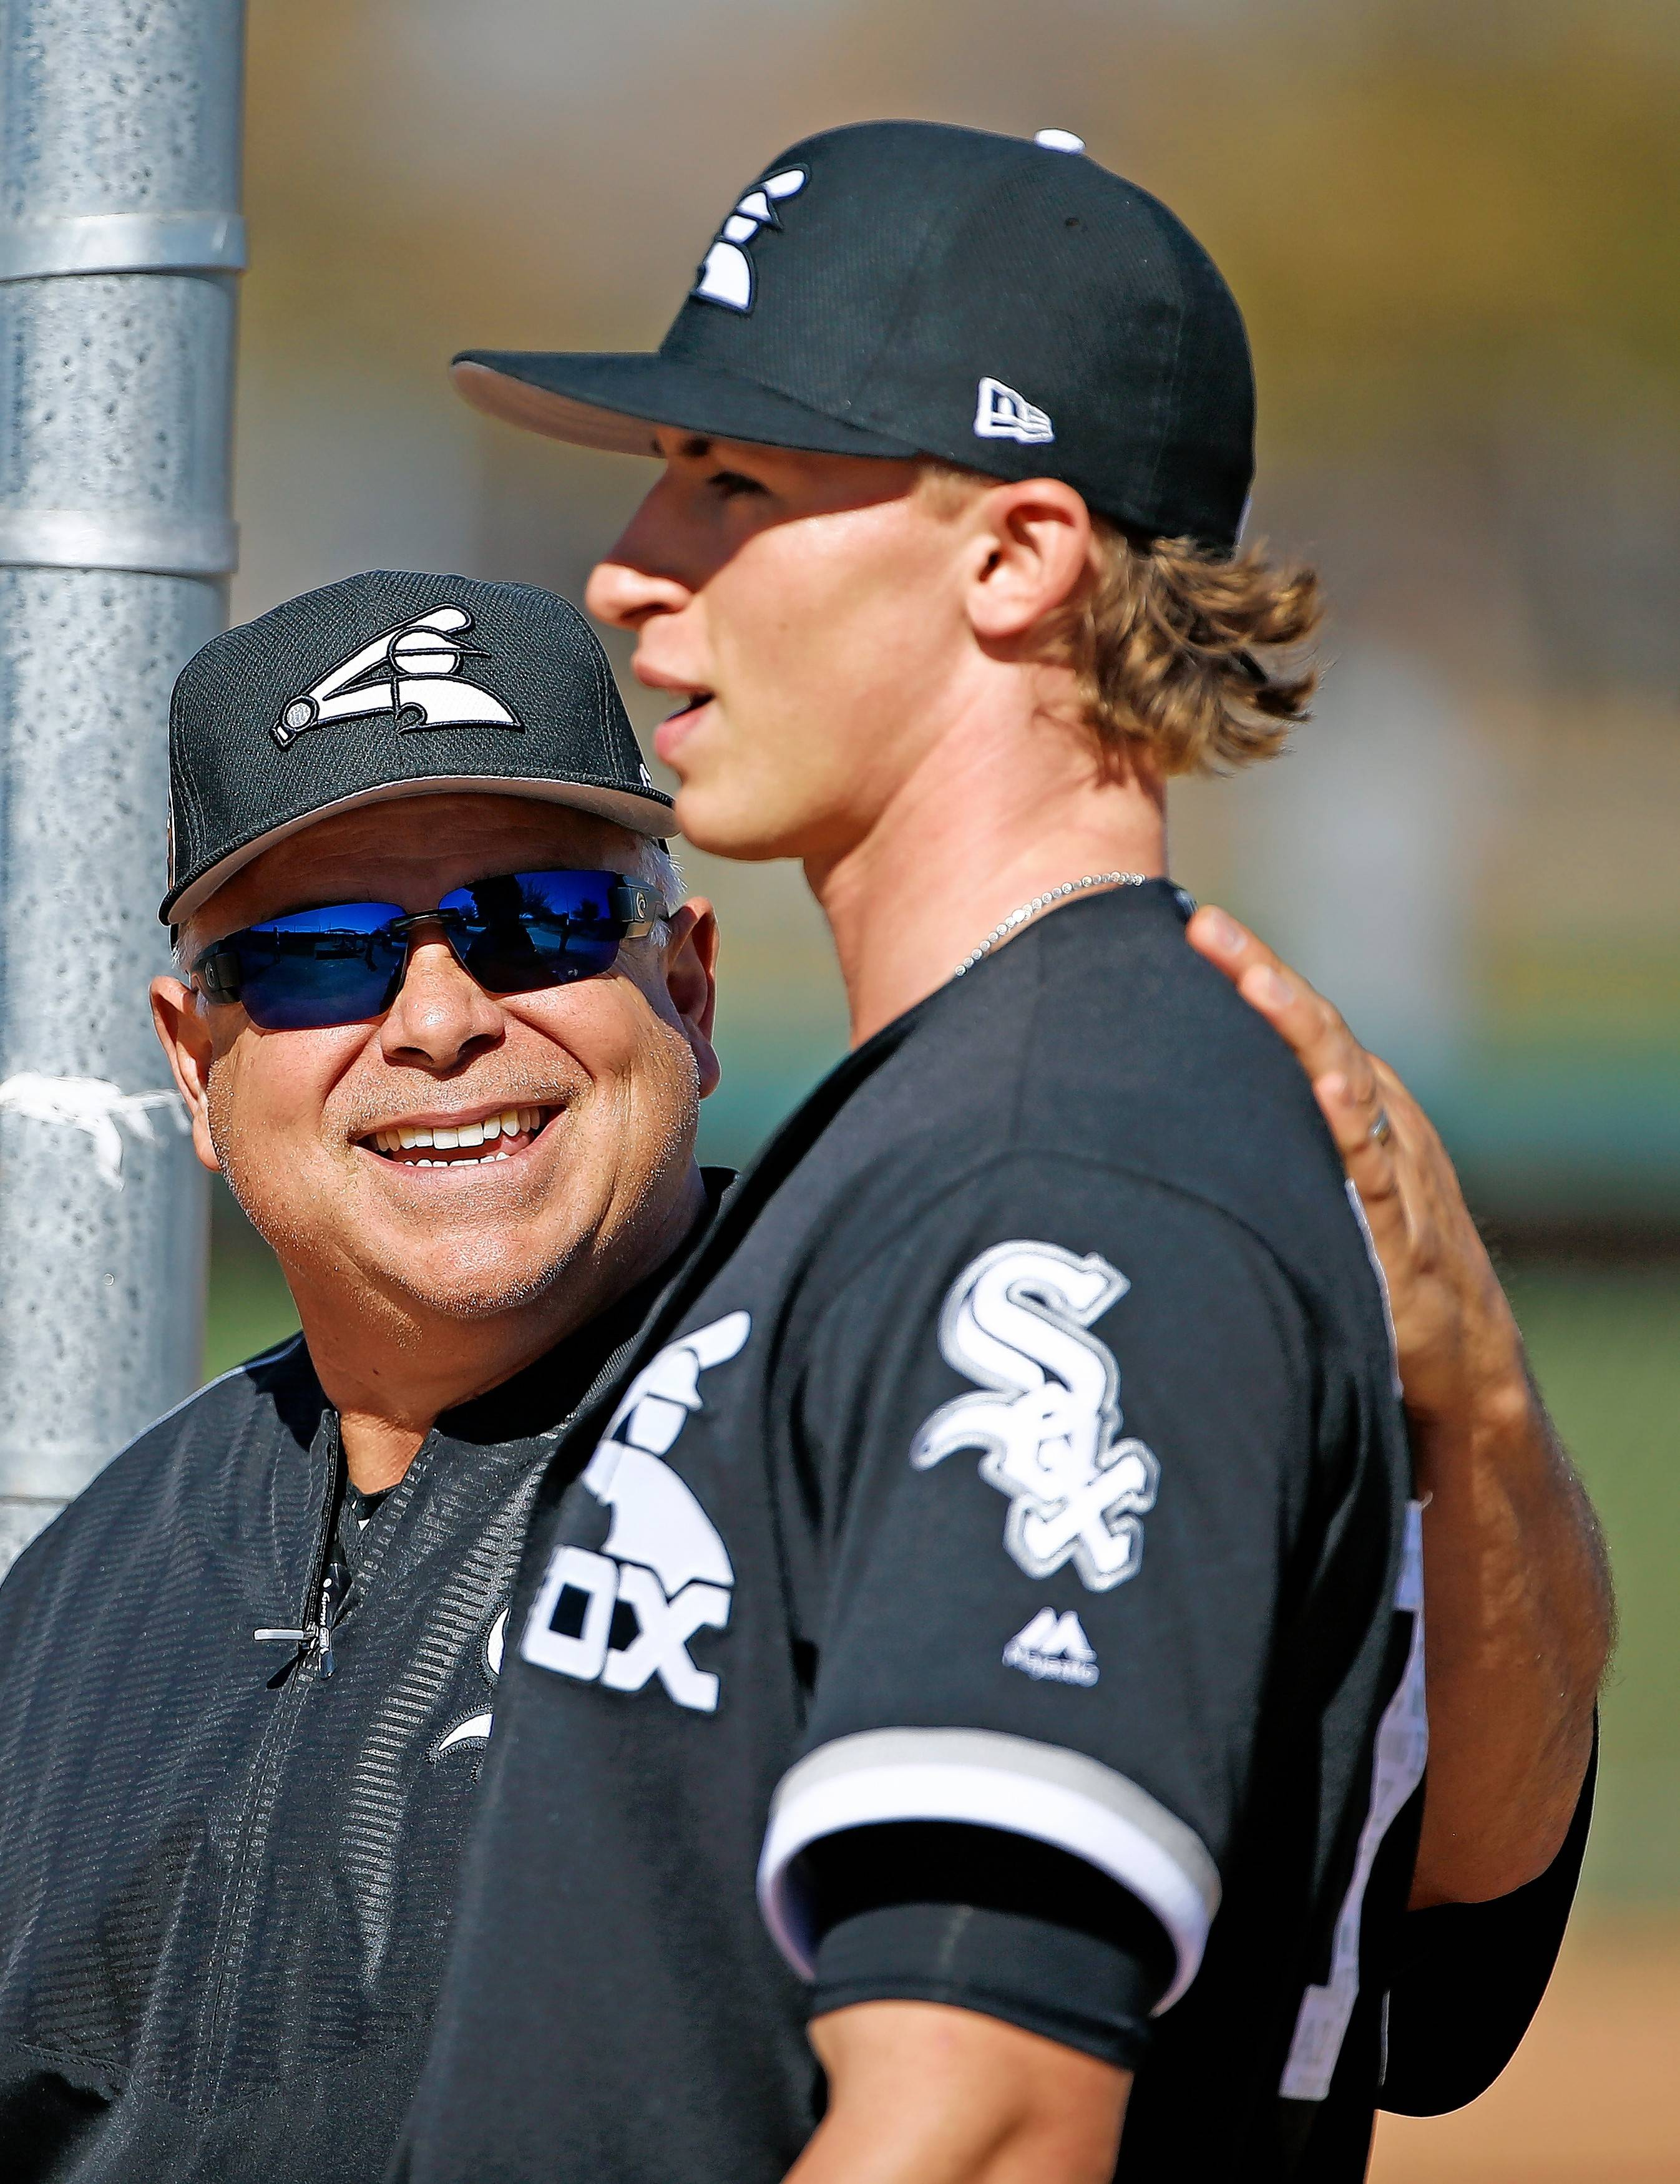 Chicago White Sox manager Rick Renteria, left, talks with pitcher Michael Kopech, right, after Kopech's throwing session at the White Sox baseball spring training facility Wednesday, Feb. 15, 2017, in Glendale, Ariz. (AP Photo/Ross D. Franklin)